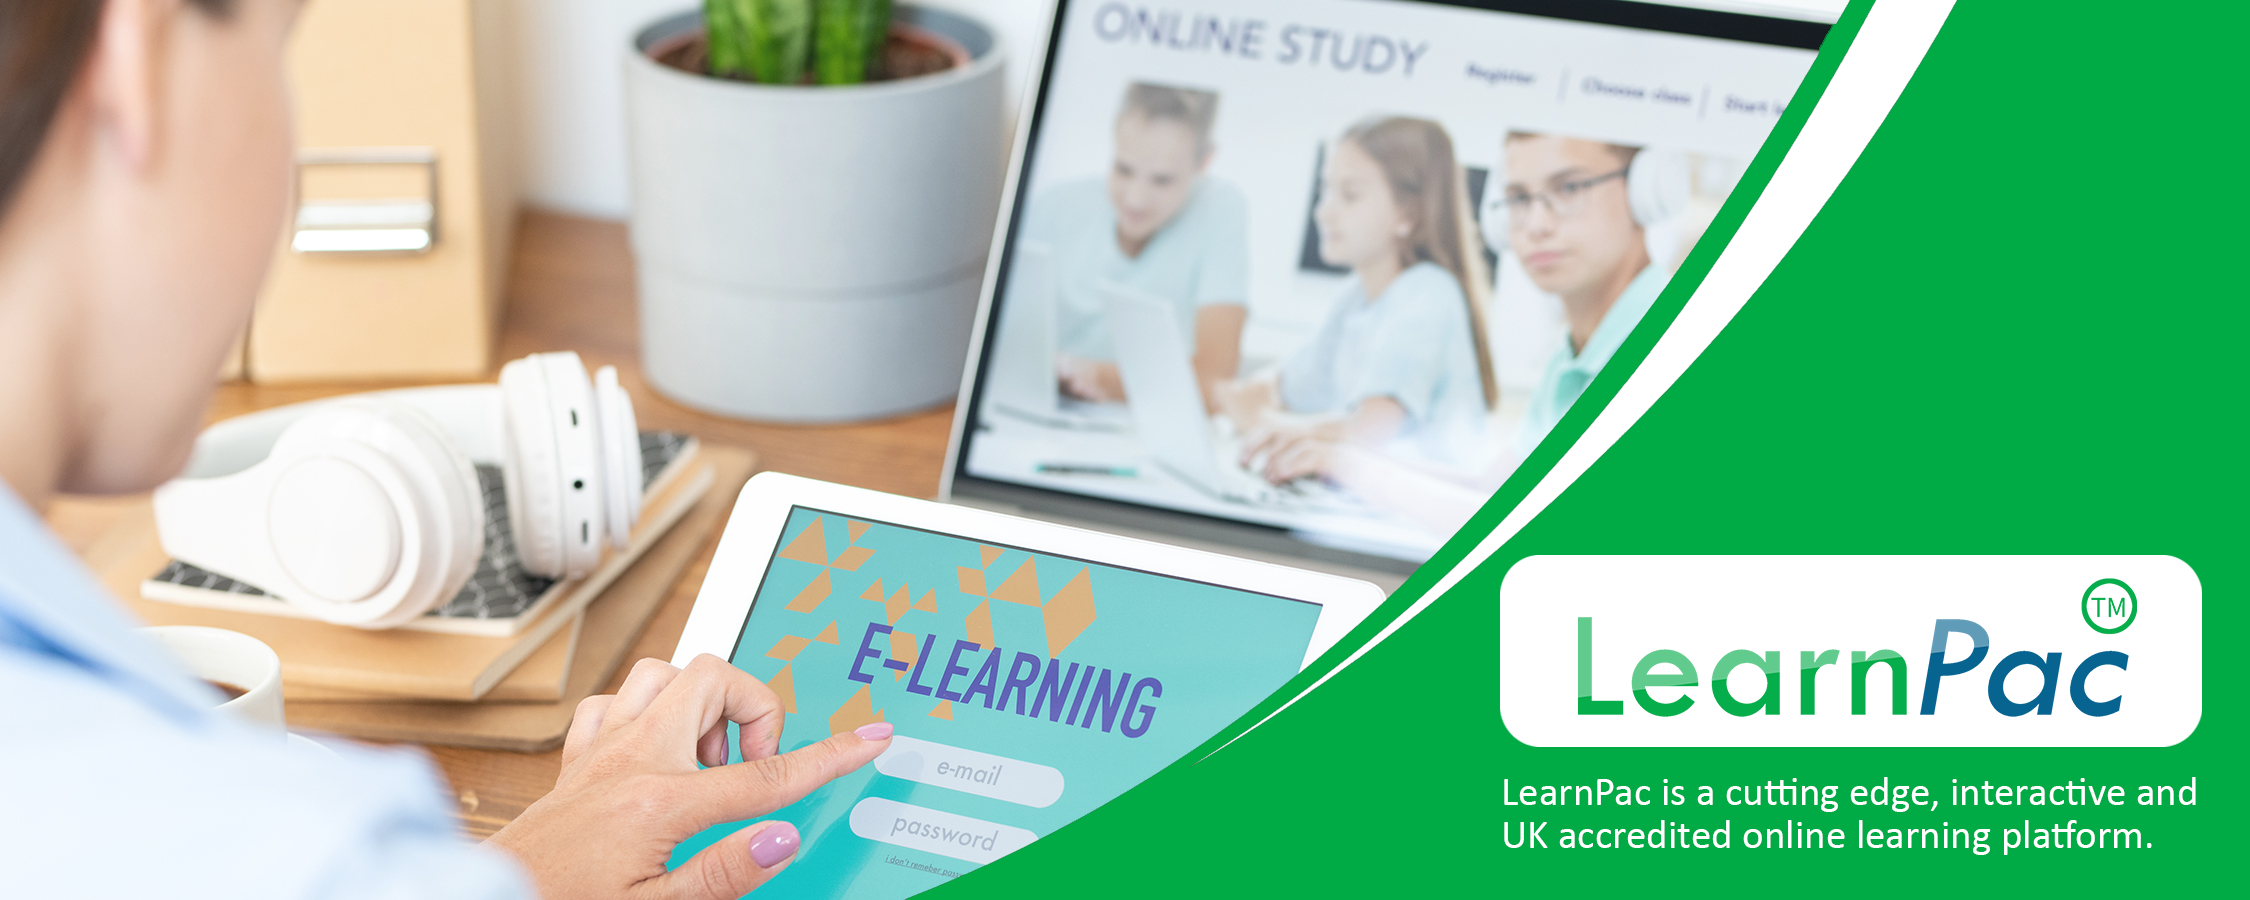 Clinical Observations - Online Learning Courses - E-Learning Courses - LearnPac Systems UK -